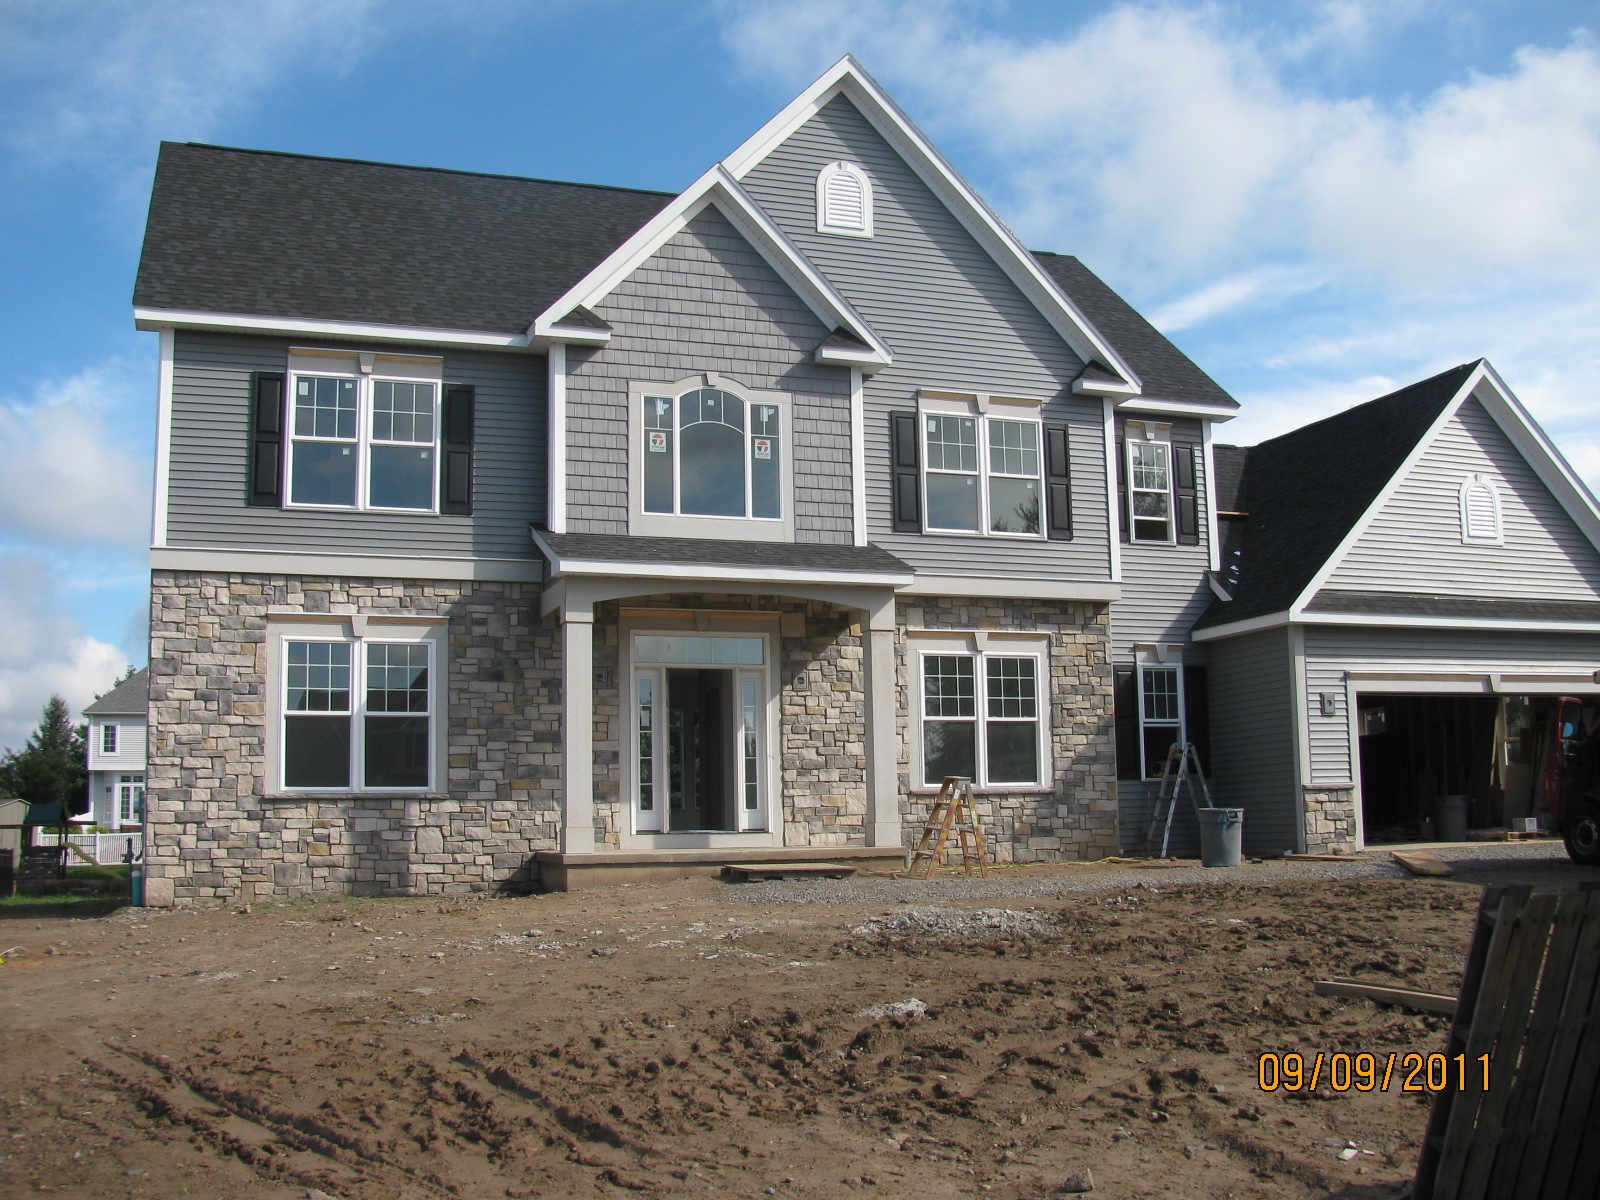 Stone Exterior: Nit's News: Siding, Stone And Primed